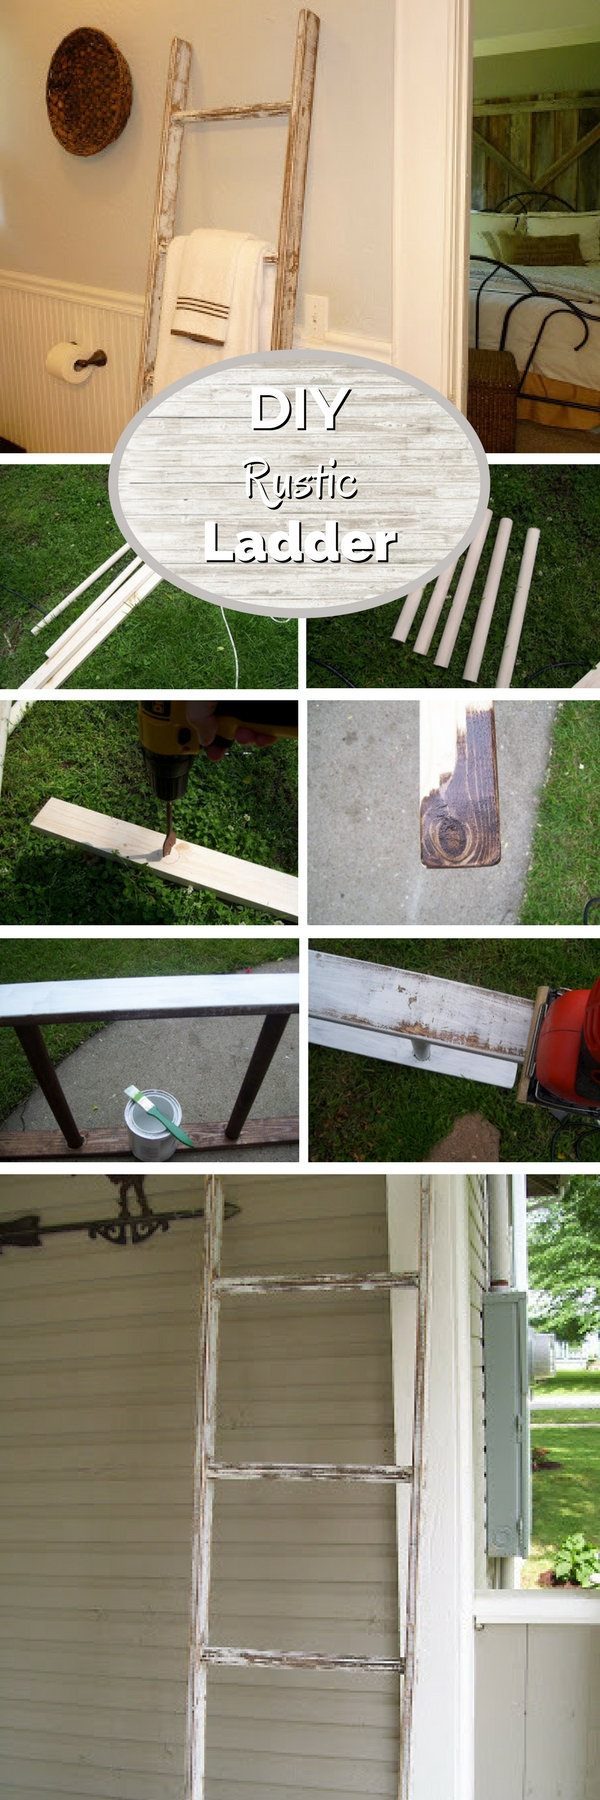 #DIY Rustic Ladder #bathroomdecor